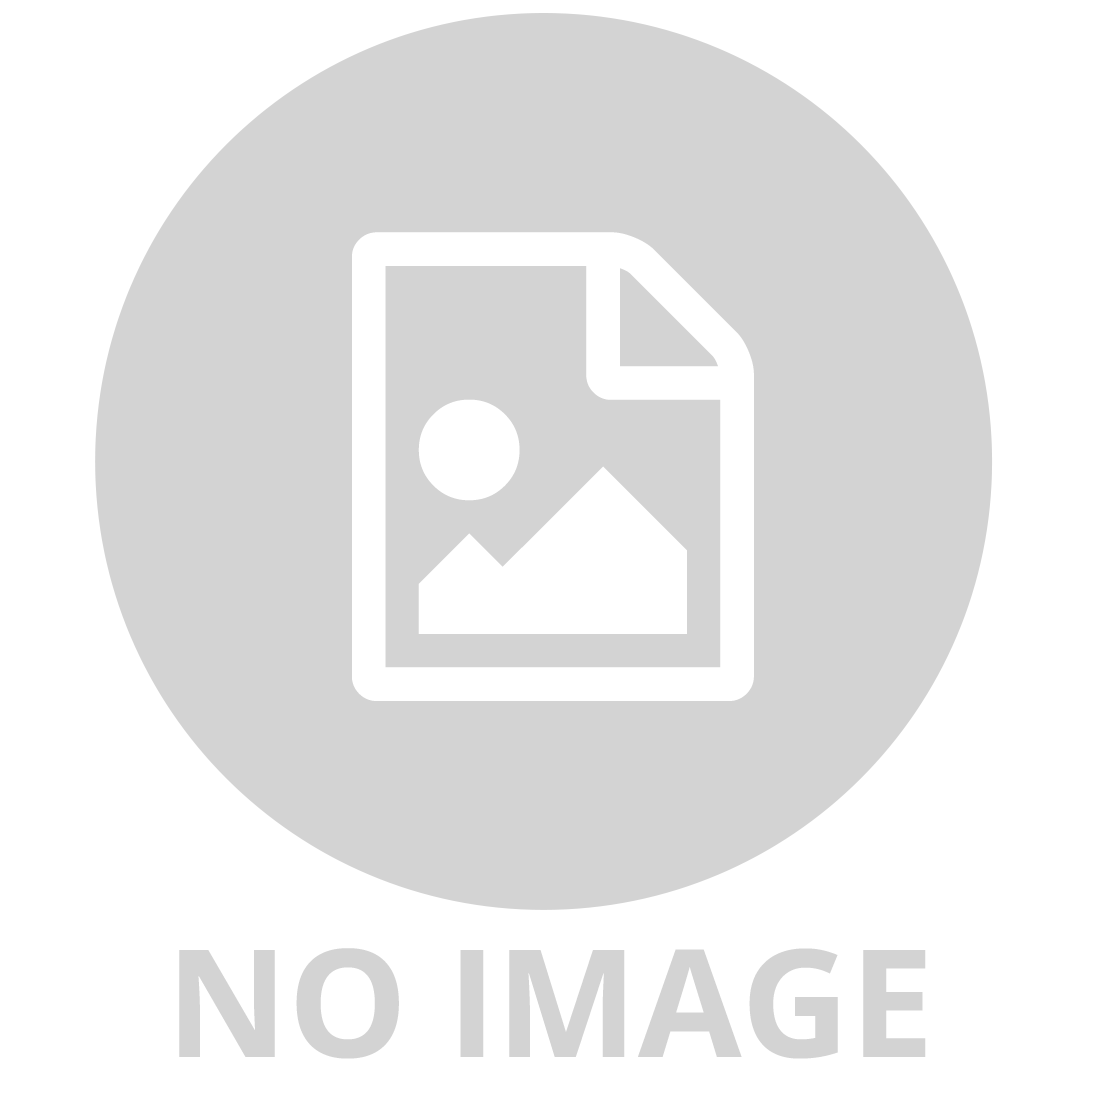 FISHER PRICE LAUGH AND LEARN PULL AND PLAY LEARNING WAGON